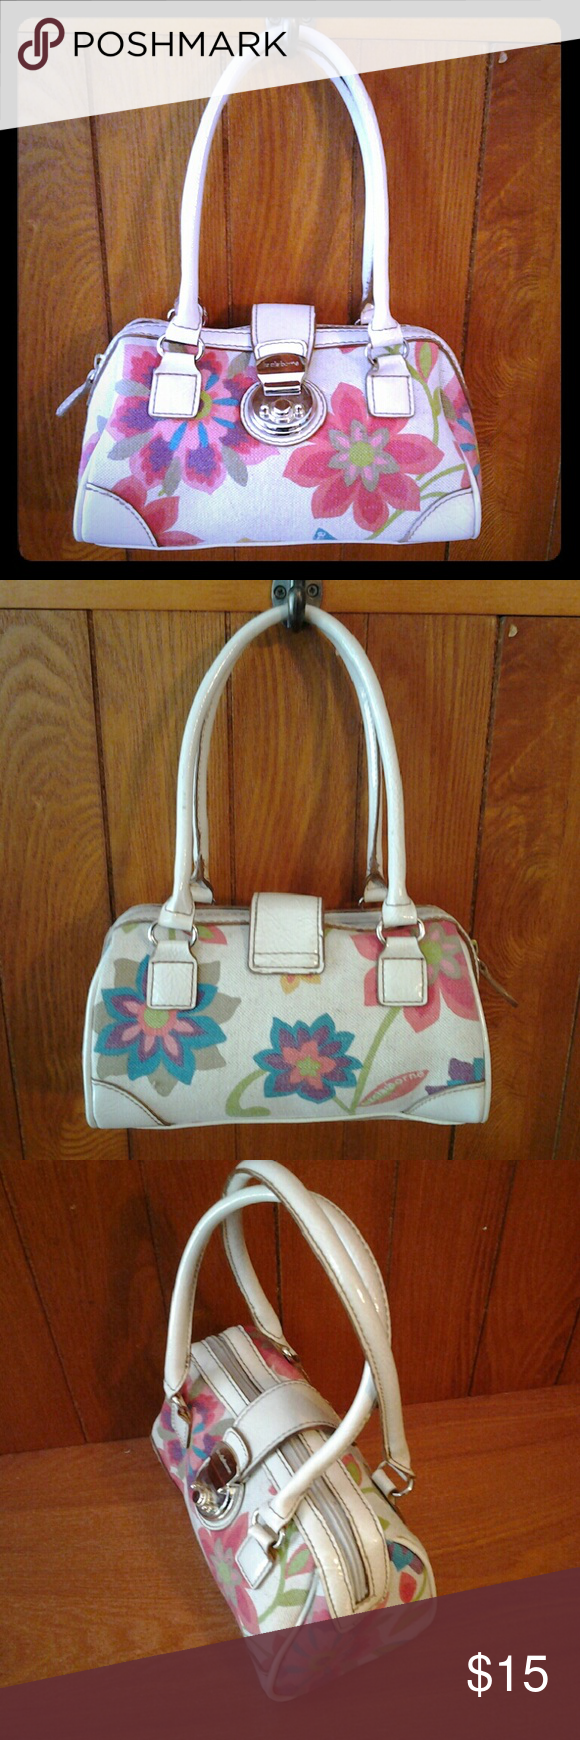 Small White Liz Claiborne purse With Floral Print White trim, fkoral print canvas decor. Gently used, in good condition. No stains, holes, or worn spots.  Zipper pocket inside.  Length 8 1/2 , 4 1/2 in high, 4 1/2 wide, 5 in high double handle. Liz Claiborne Bags Mini Bags